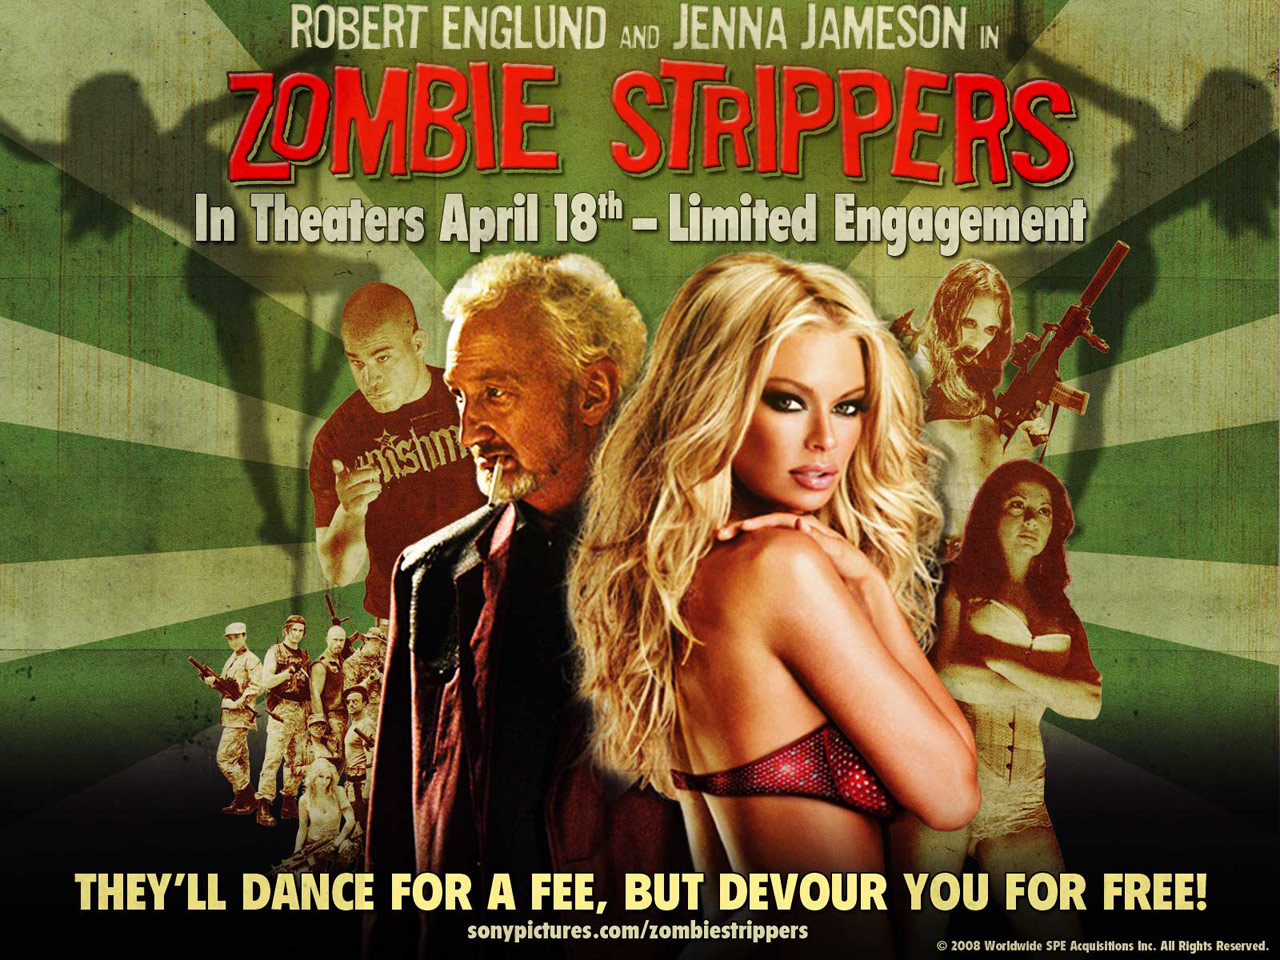 This movie is so bad it made me hate zombie movies AND naked women for about